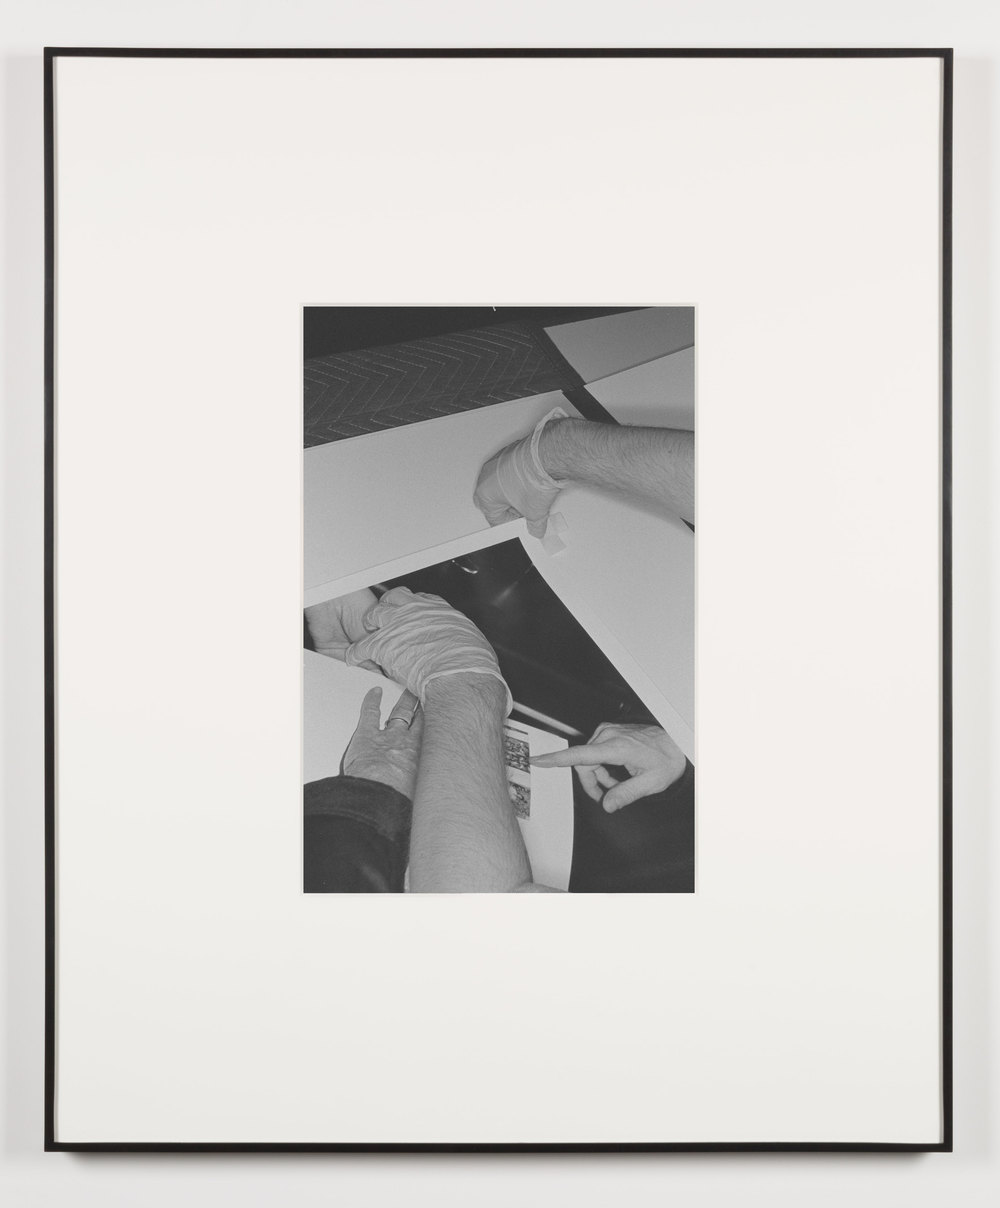 Die Qual der Lust (Los Angeles, California, August 15, 2013), Frame No. 14    2014   Black and white digital fiber print  20 x 13 1/2 inches   Selected Bodies of Work, 2014